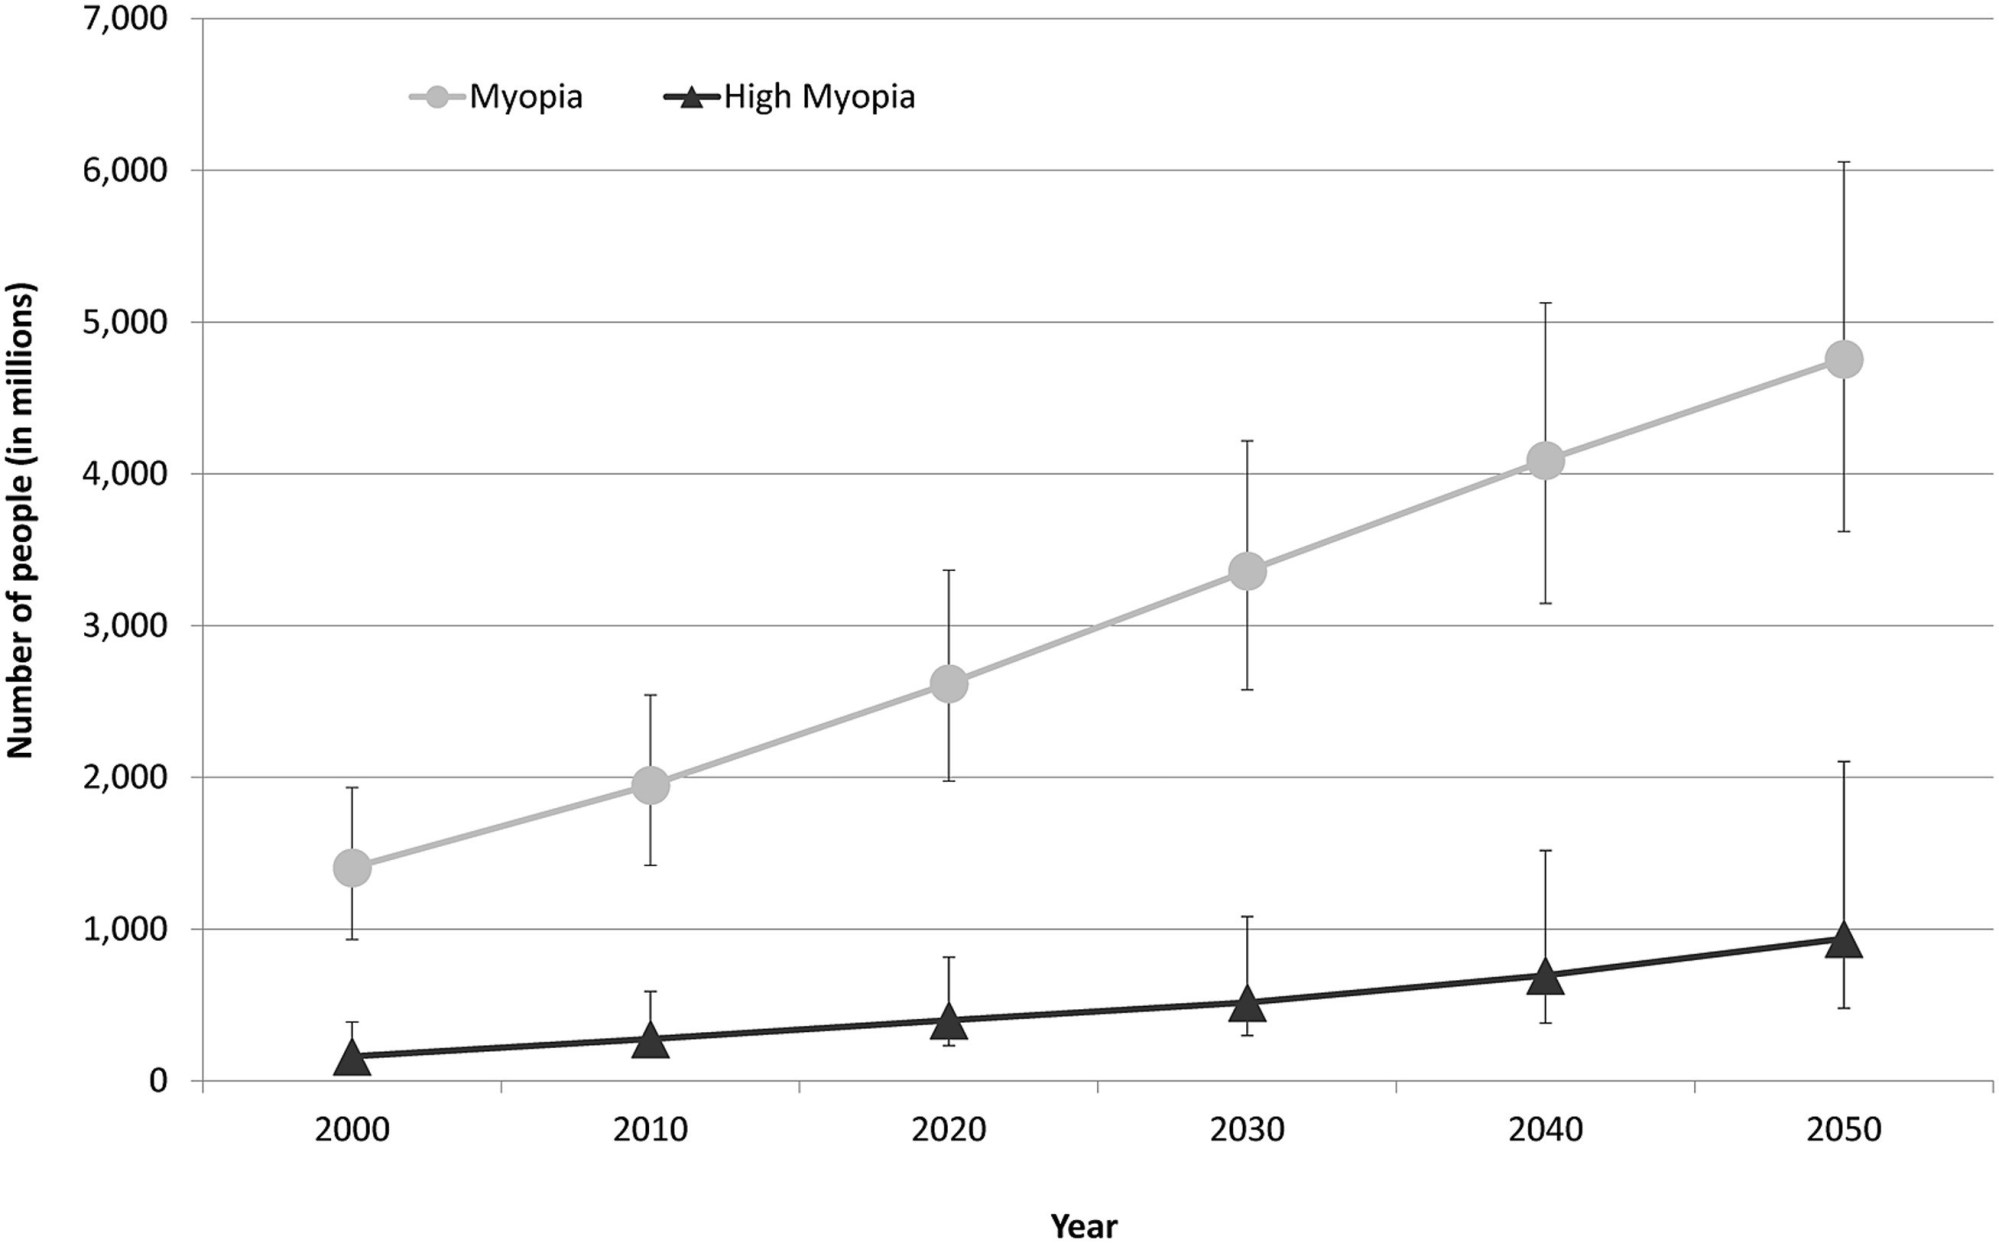 hight resolution of graph showing the number of people estimated to have myopia and high myopia for each decade